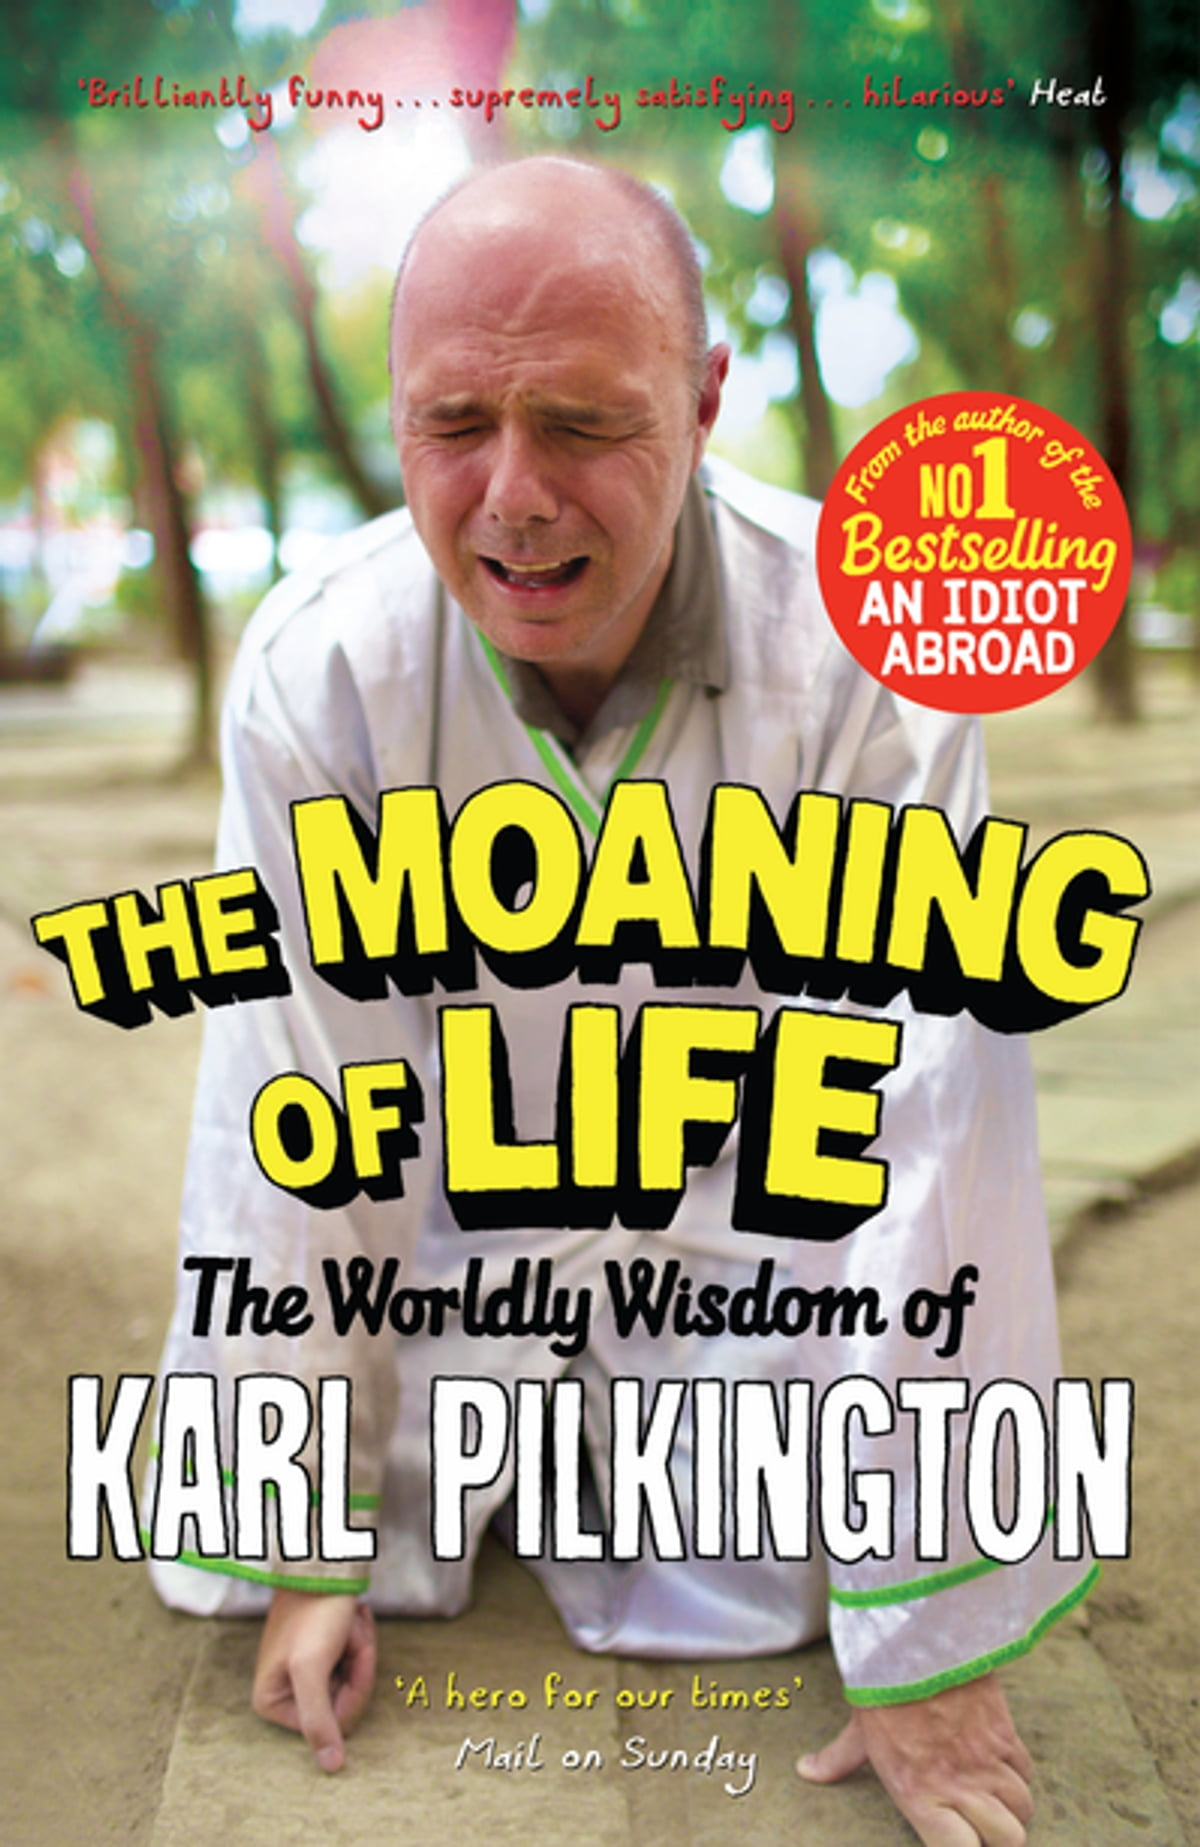 The moaning of life ebook by karl pilkington 9781782111535 the moaning of life ebook by karl pilkington 9781782111535 rakuten kobo fandeluxe Ebook collections